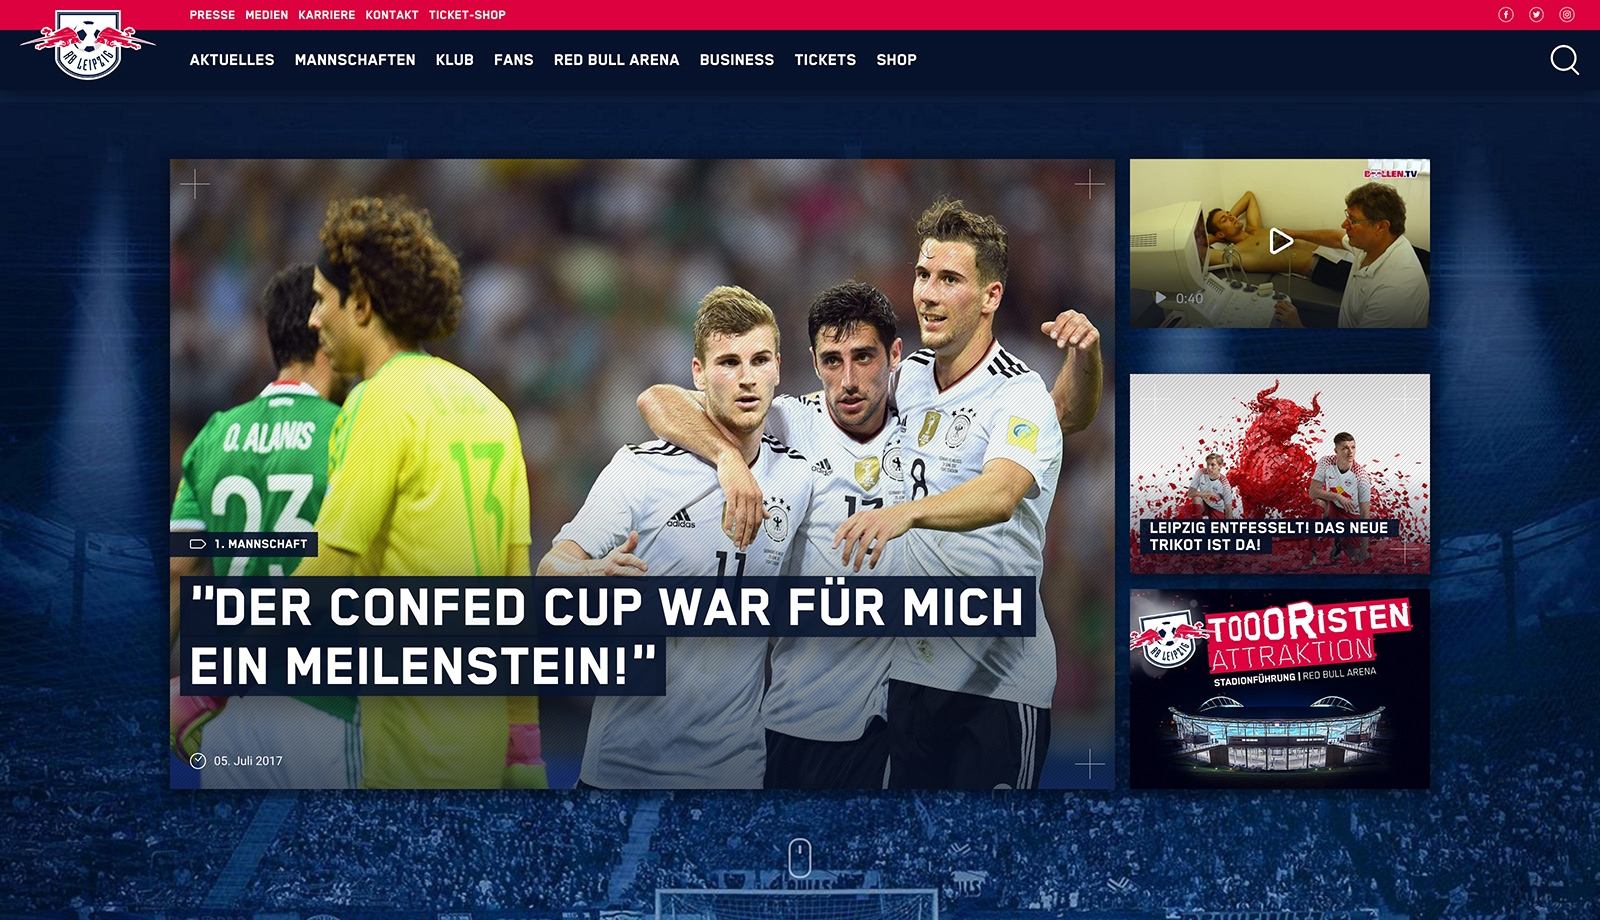 Rb Leipzig Website Relaunch 2017 Image 01